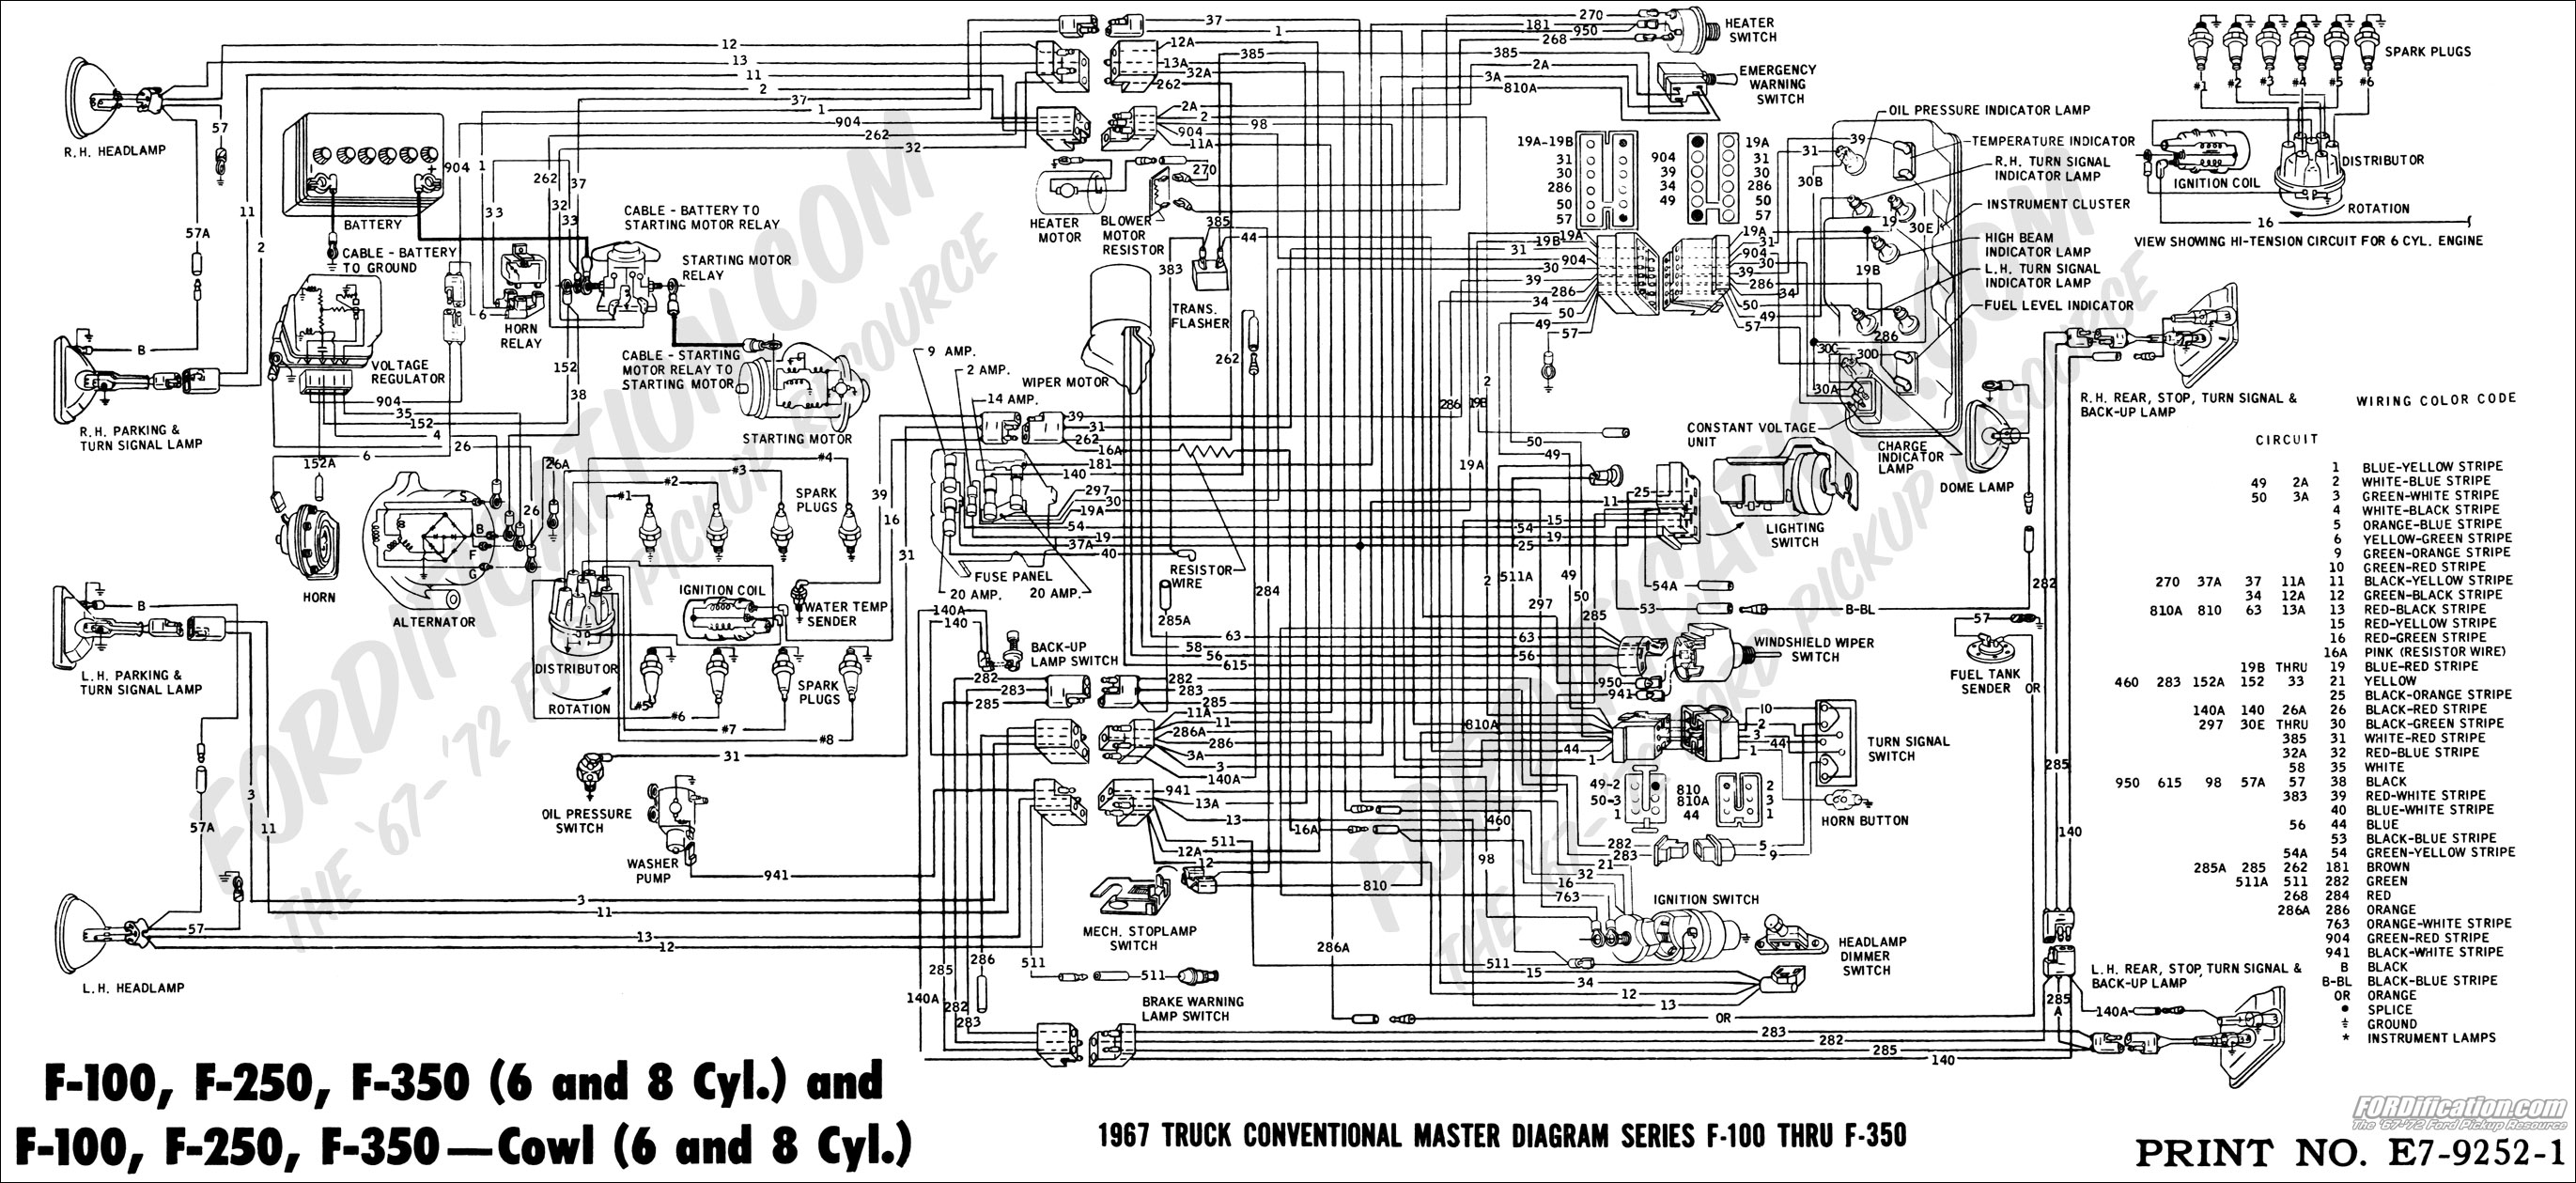 ford truck technical drawings and schematics section h wiring rh fordification com wiring diagram 1983 ford f250 headlights wiring diagram 1983 ford f250 headlights